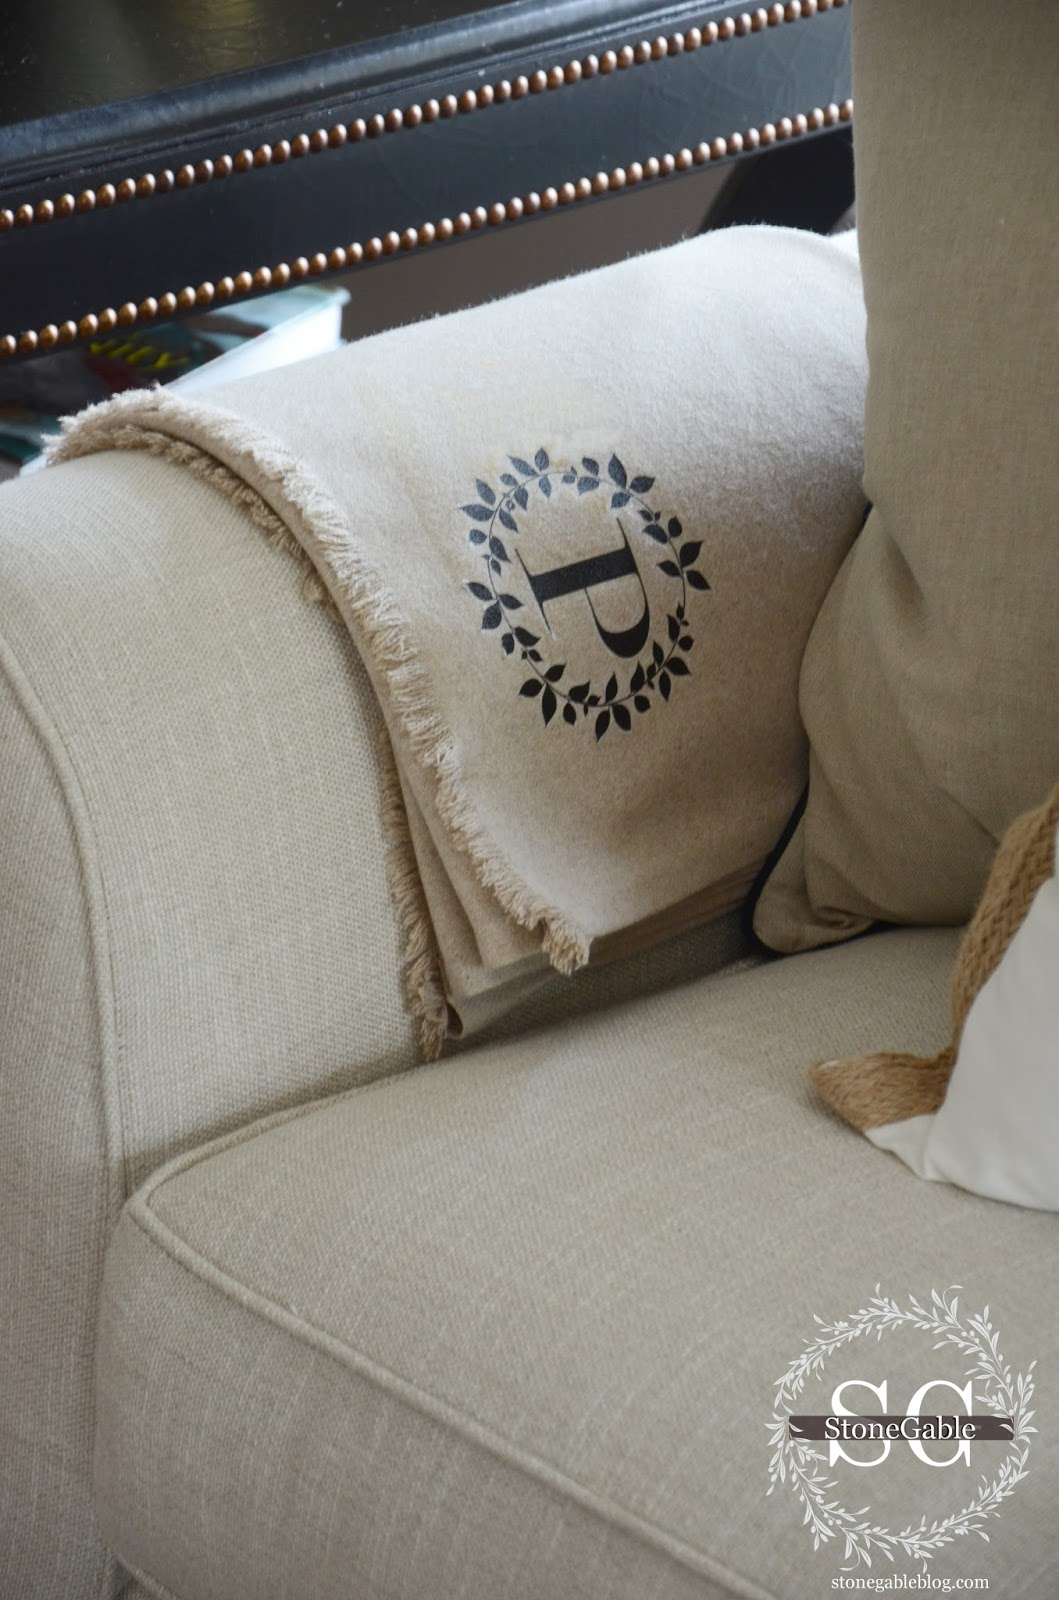 Diy Roman Chair Country Kitchen Chairs No-sew Monogrammed Wool Throw - Stonegable